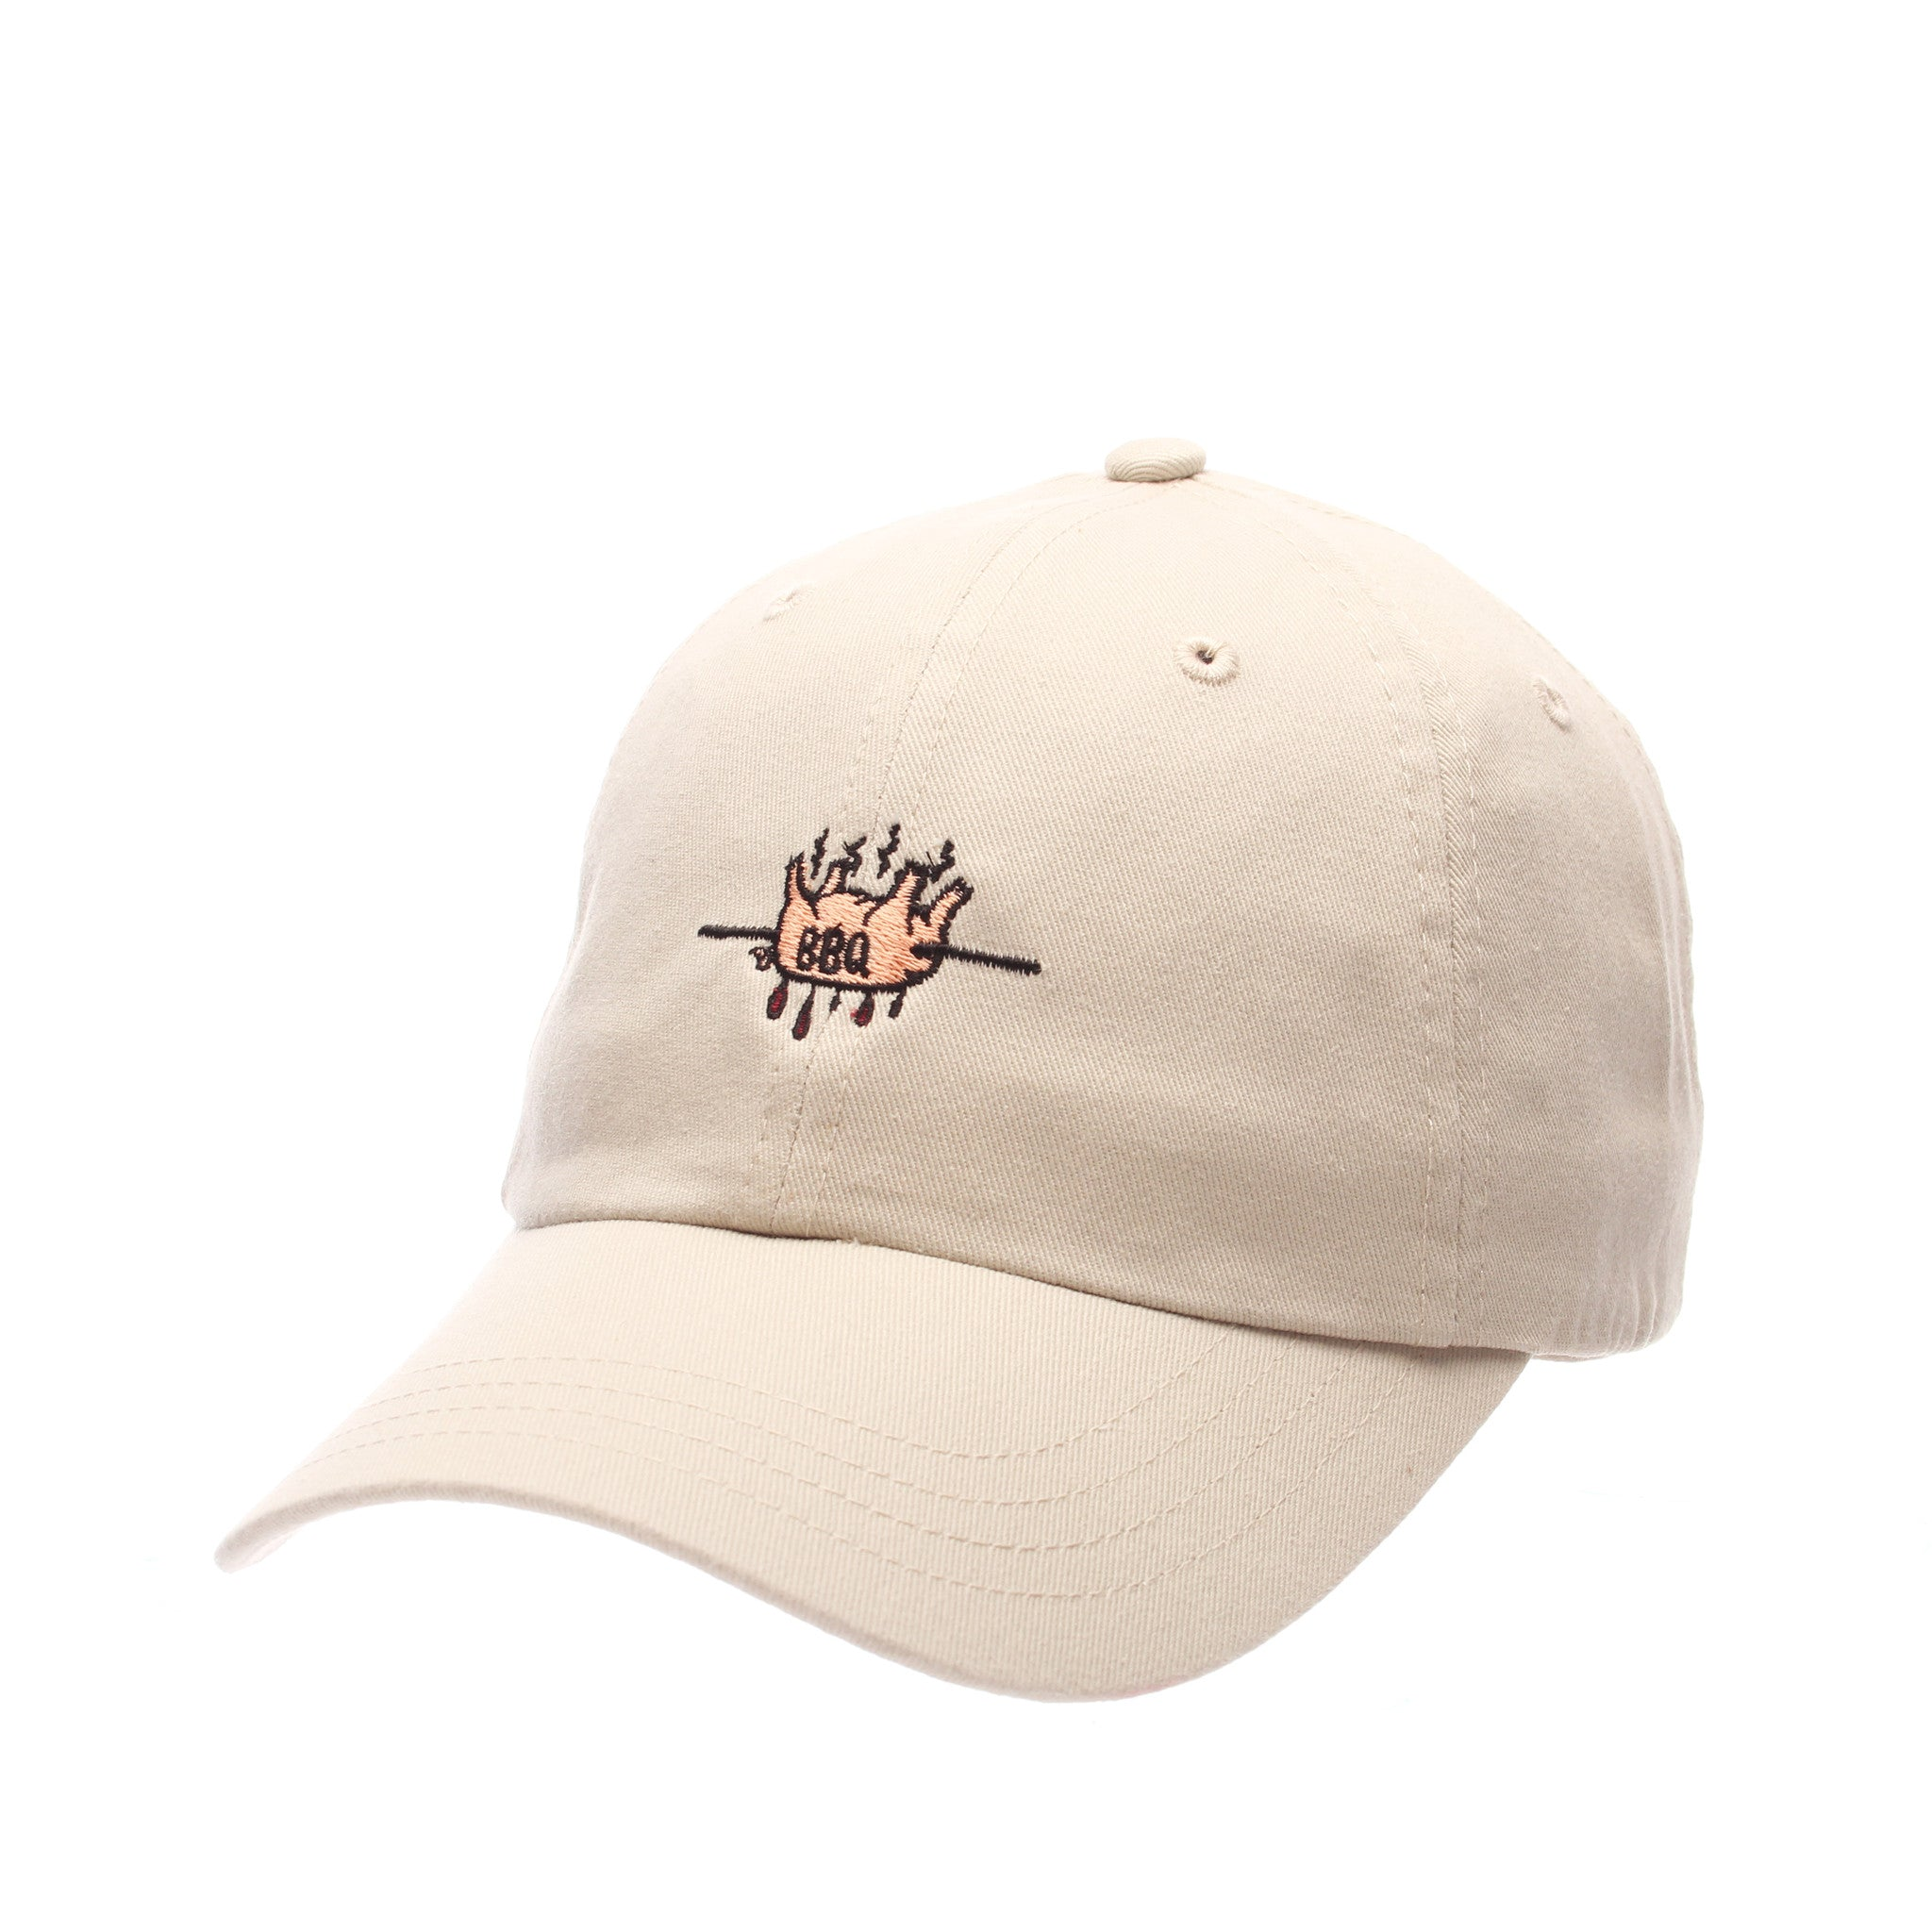 Dad Hat (BBQ PIG) Stone Washed Adjustable hats by Zephyr